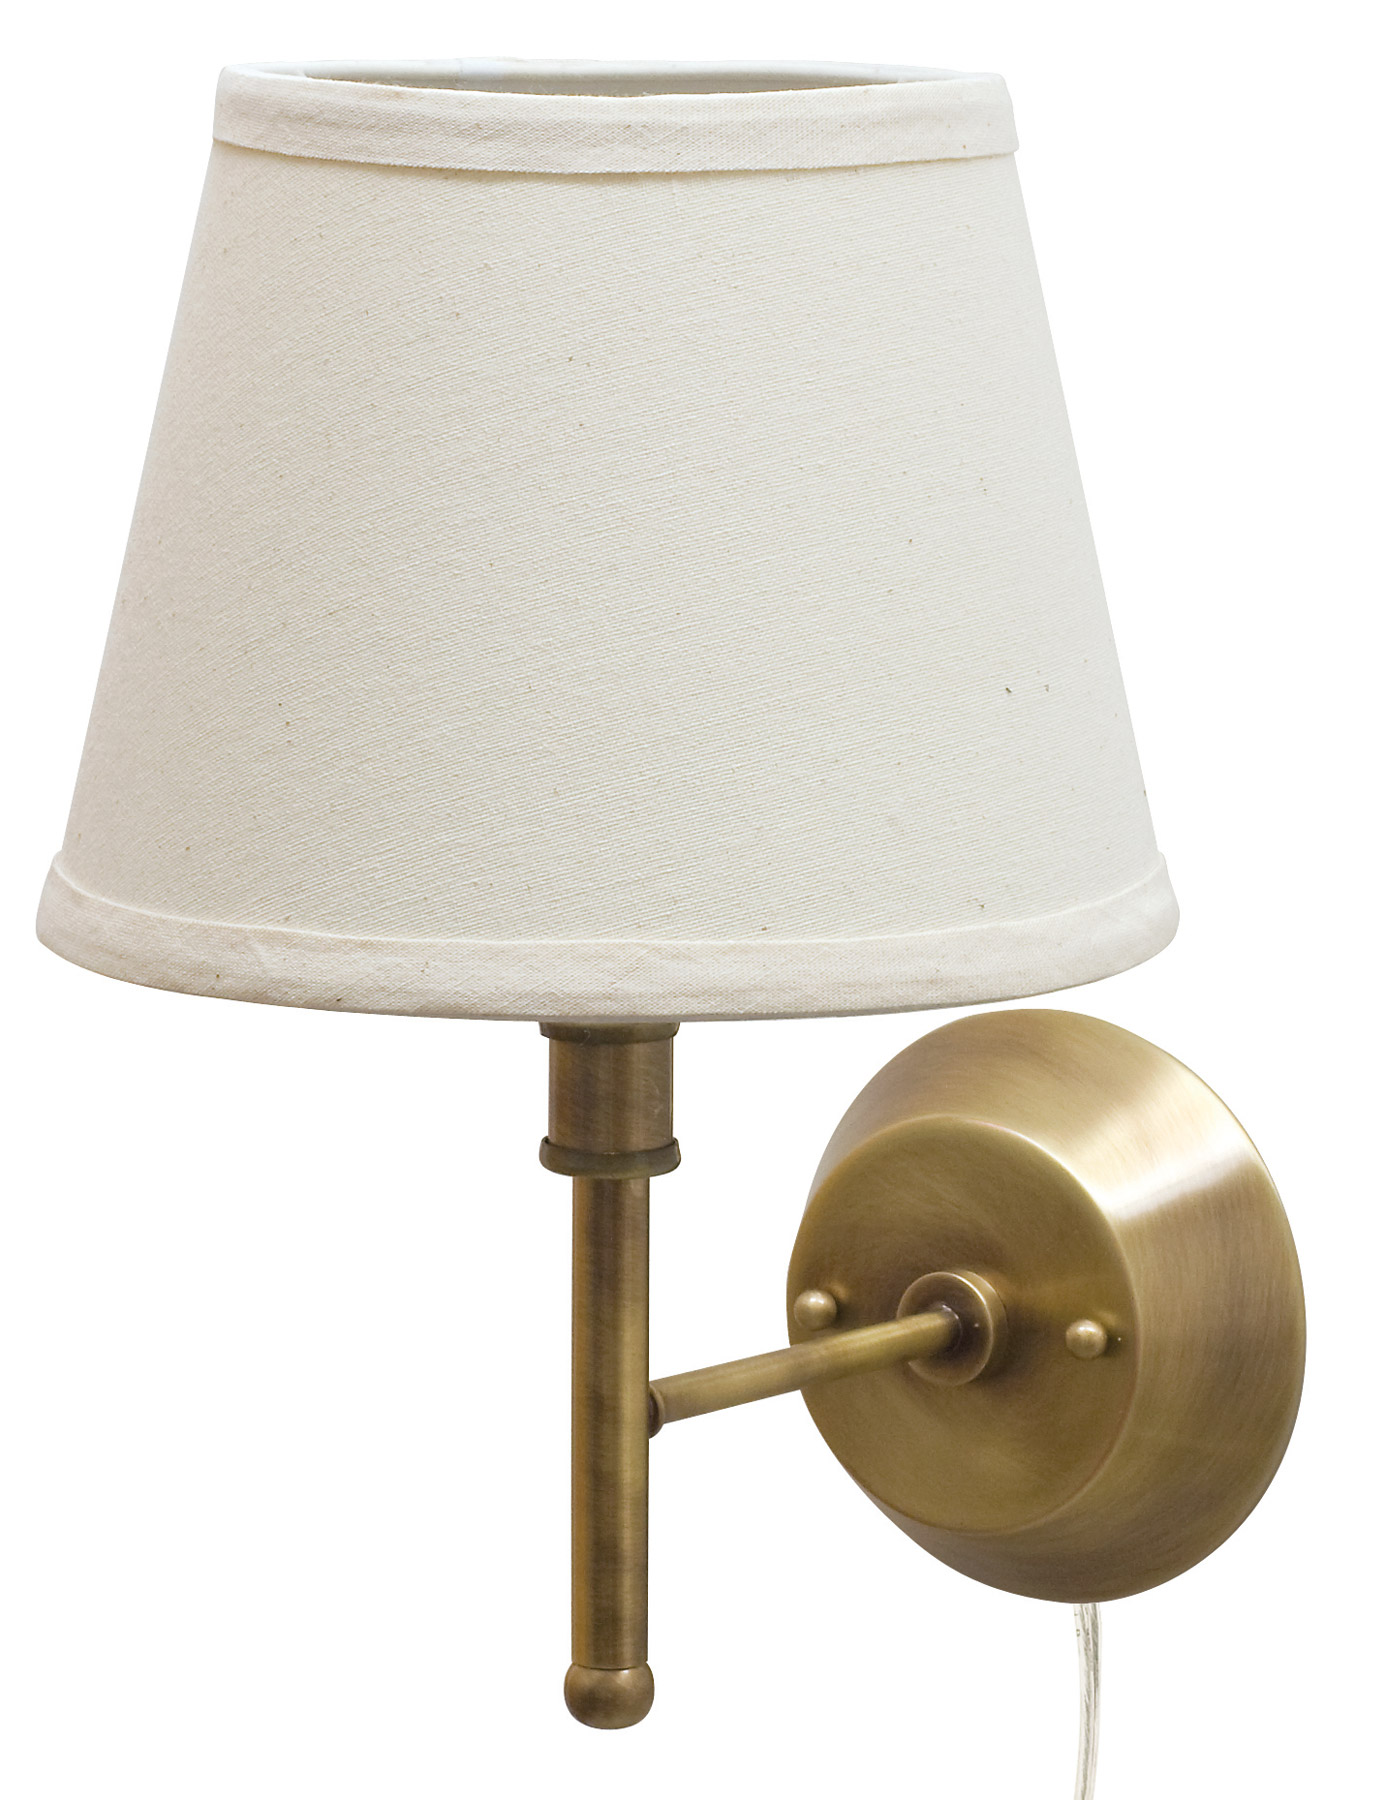 house of troy gr901 ab greensboro pin up wall lamp